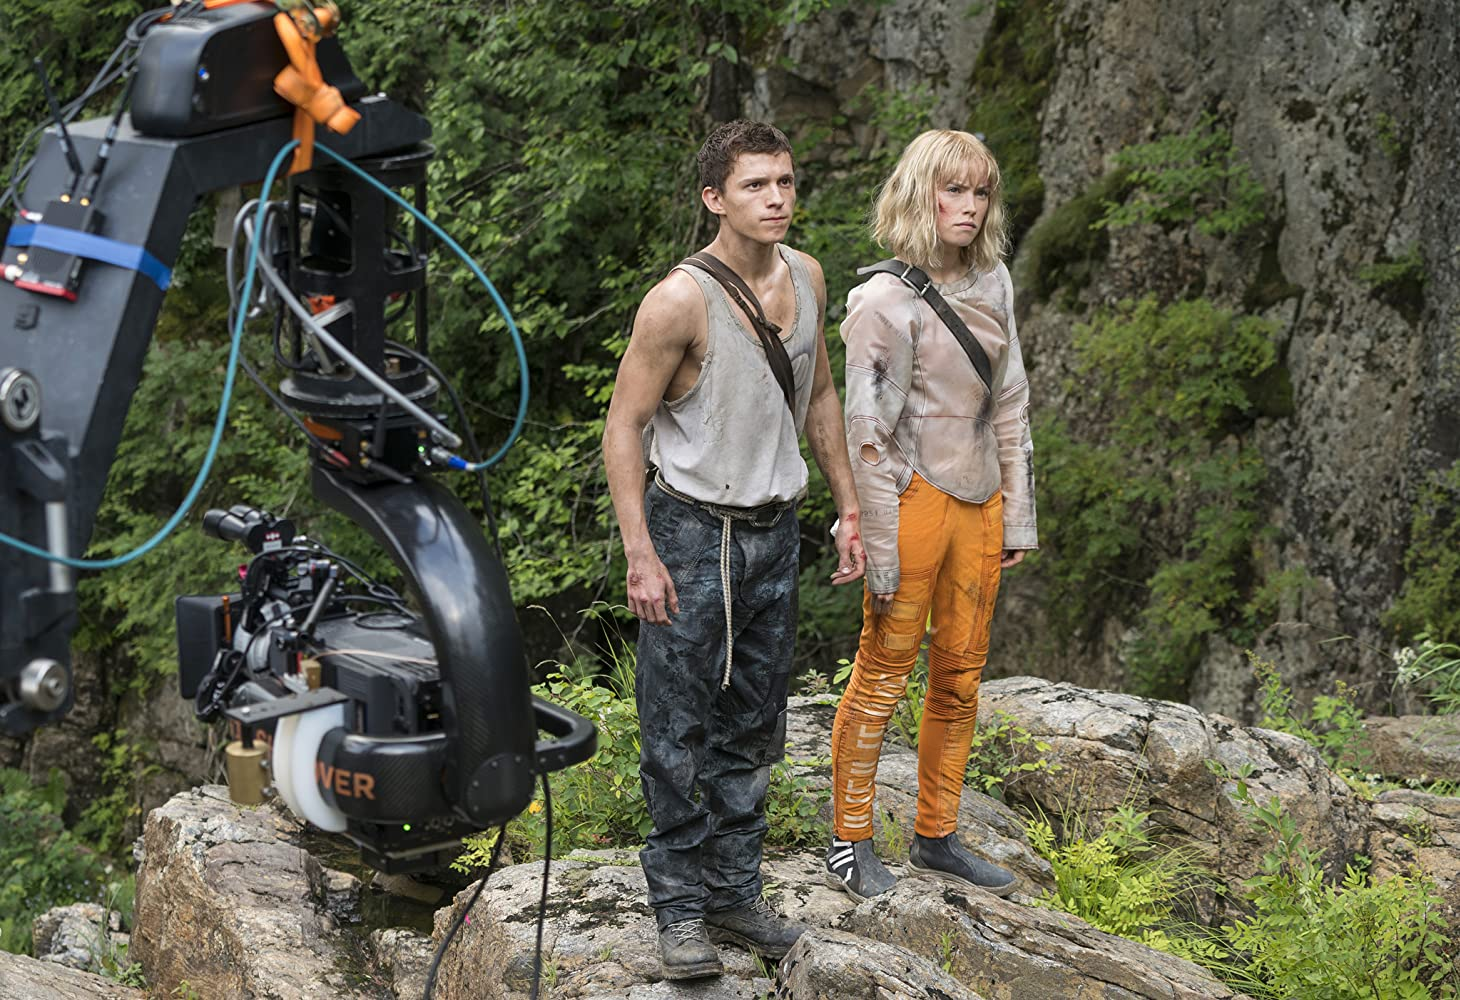 Chaos Walking film still of two people standing on a rock